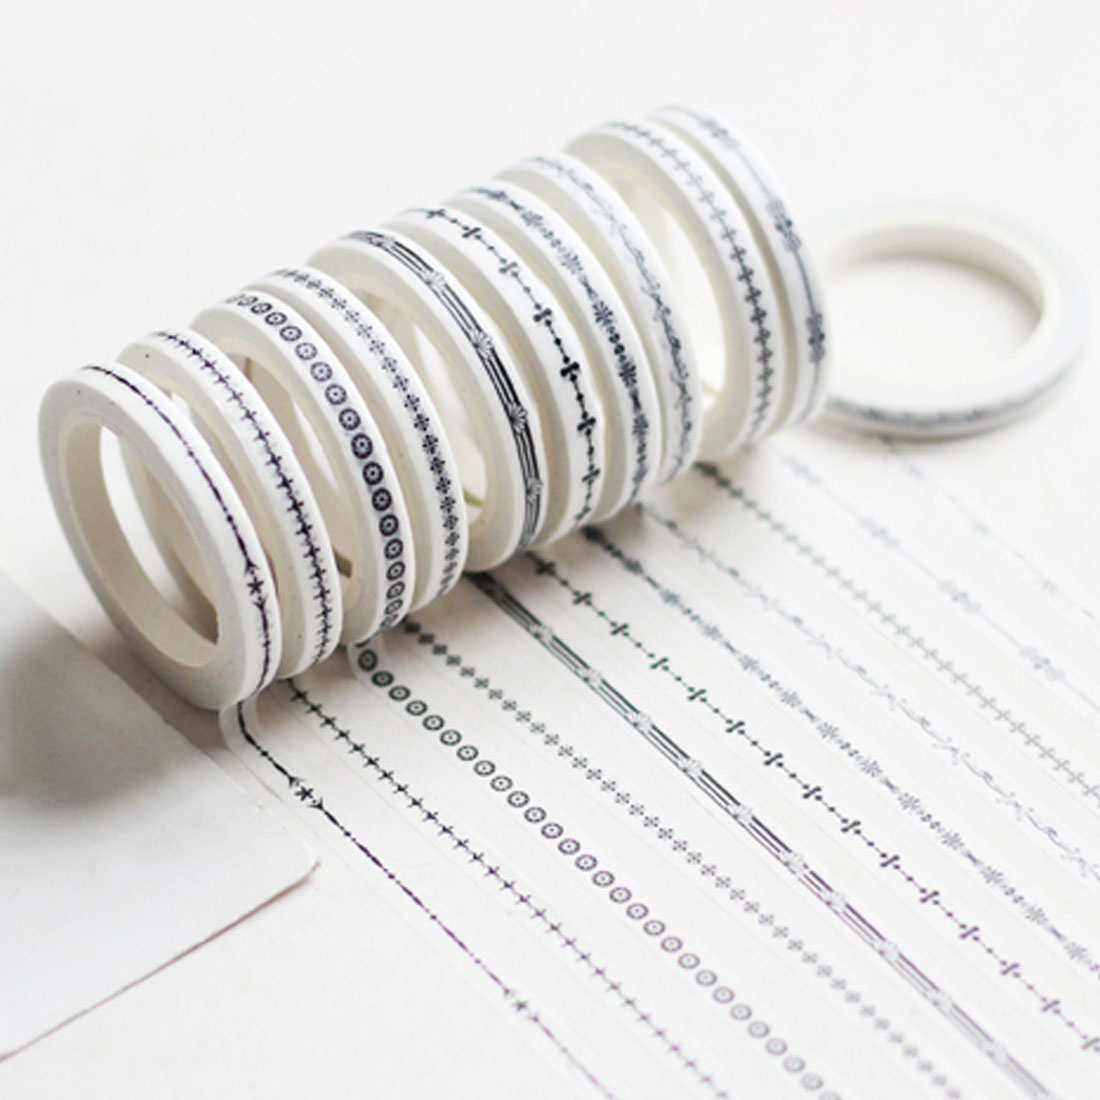 5mm X 5m Slim Retro Border Material Handbook Decorative Sticker Fine Section Tapes Diy Washi Tape Scrapbooking Masking Tape